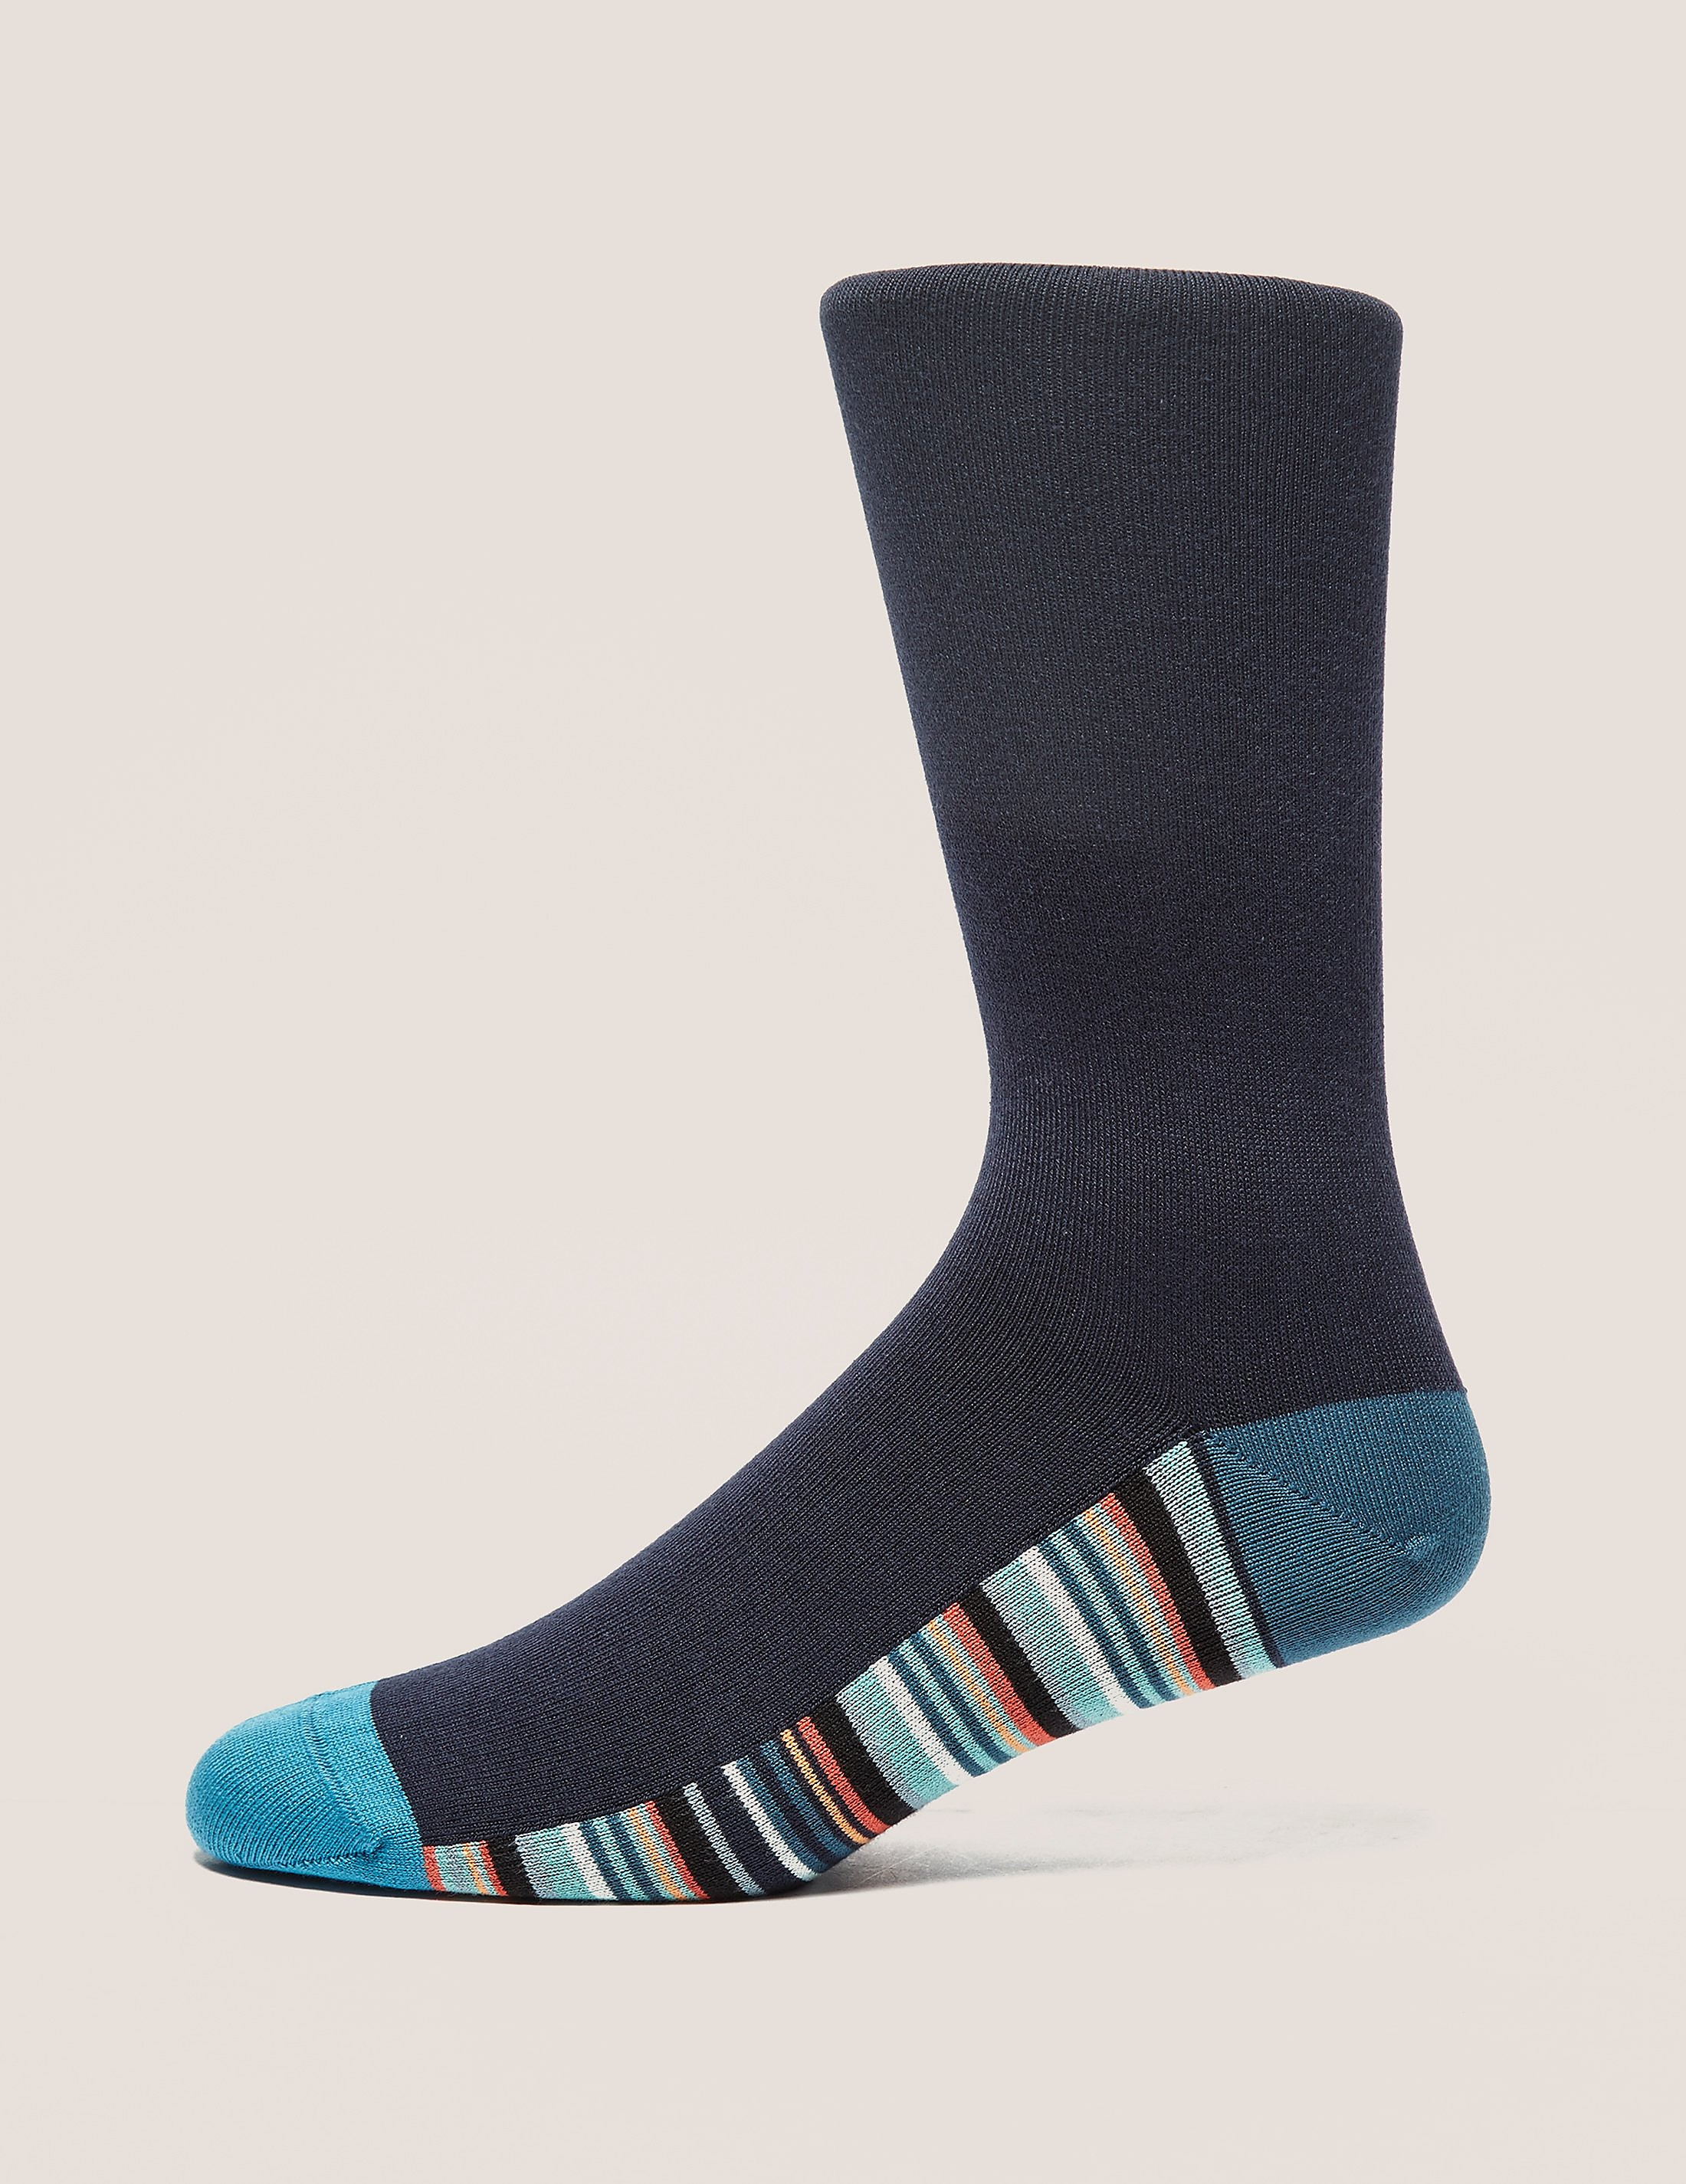 Paul Smith Stripe Sole Socks